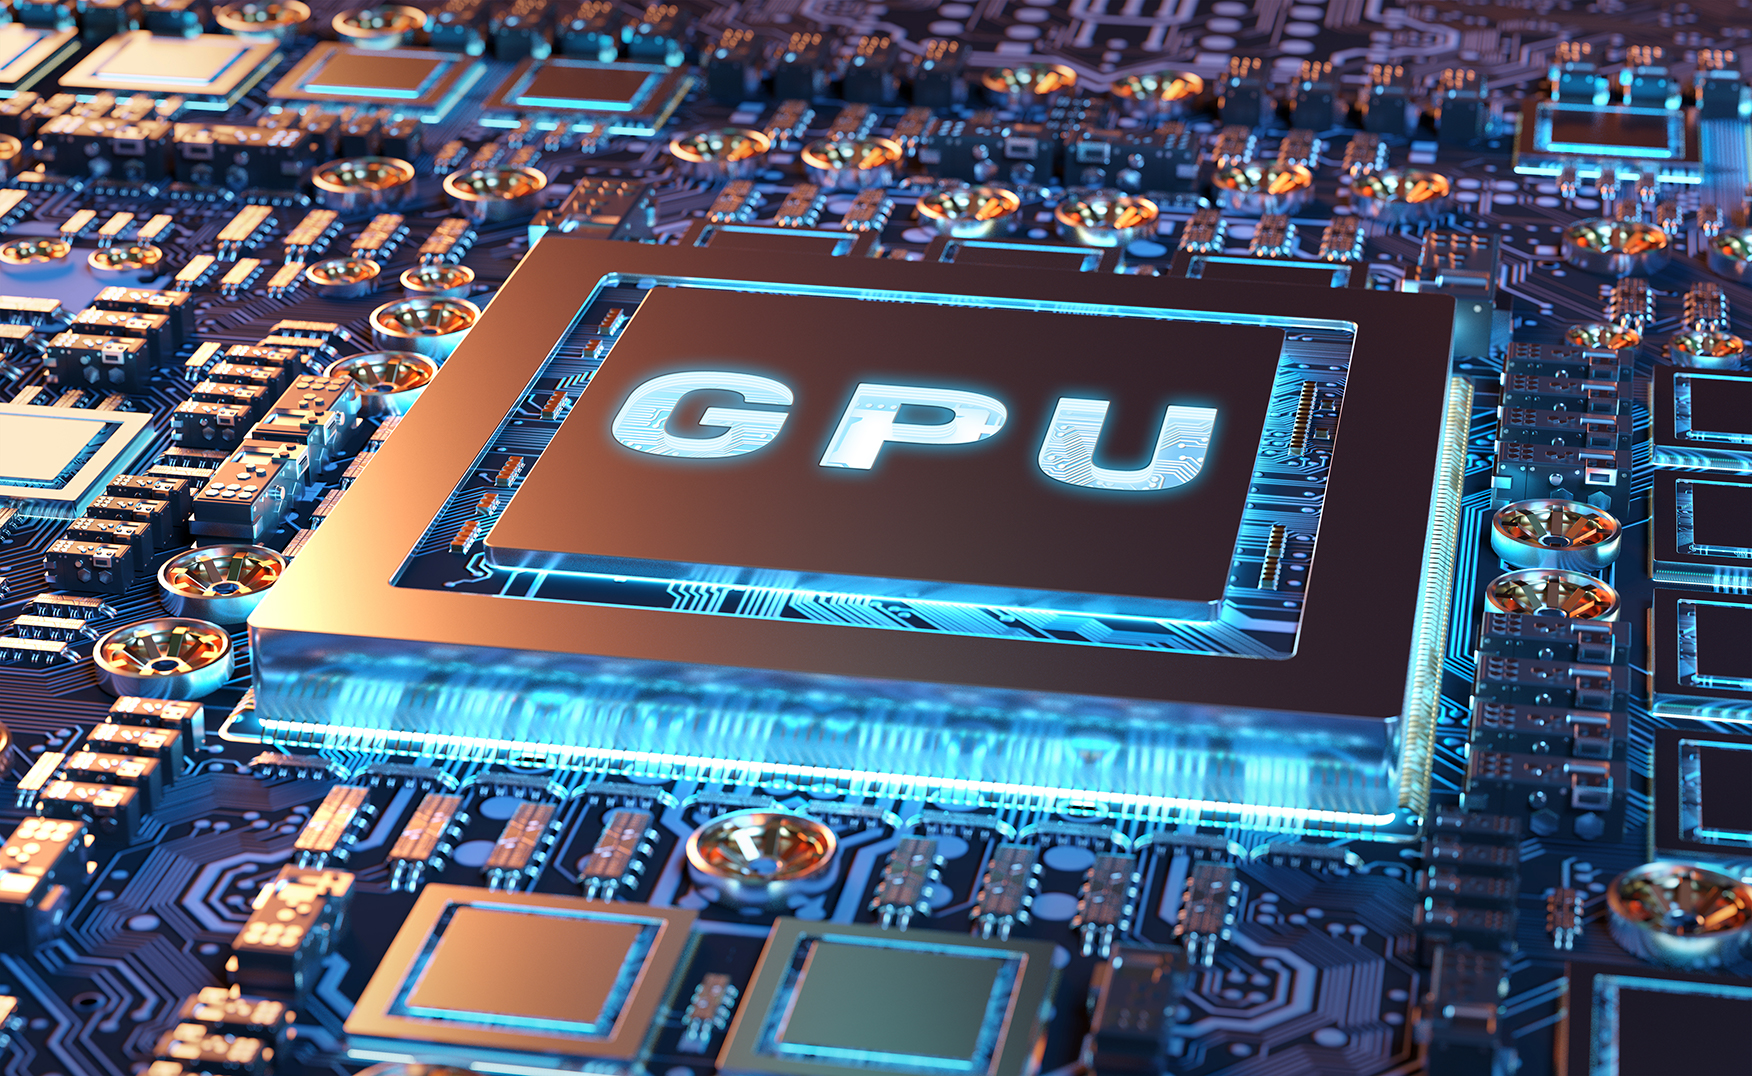 Single GPU: Perfect for smaller amounts of AI & Deep Learning Model training and powering gaming computers